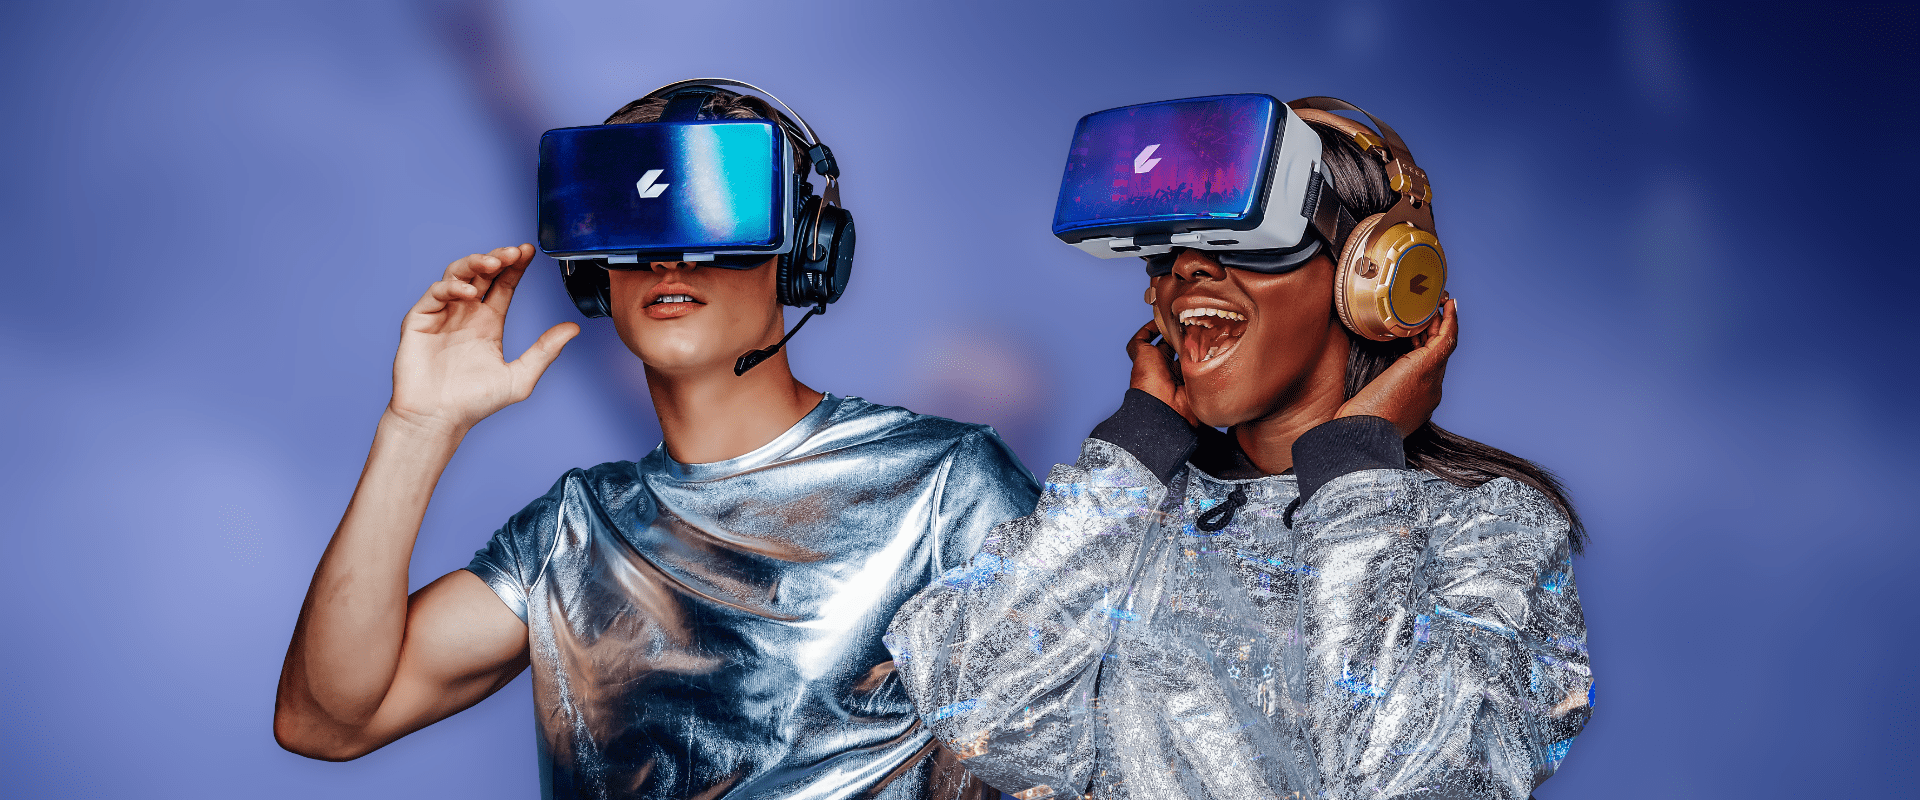 VR Headsets Are Sold Out Everywhere As VR Porn Trends Up Again